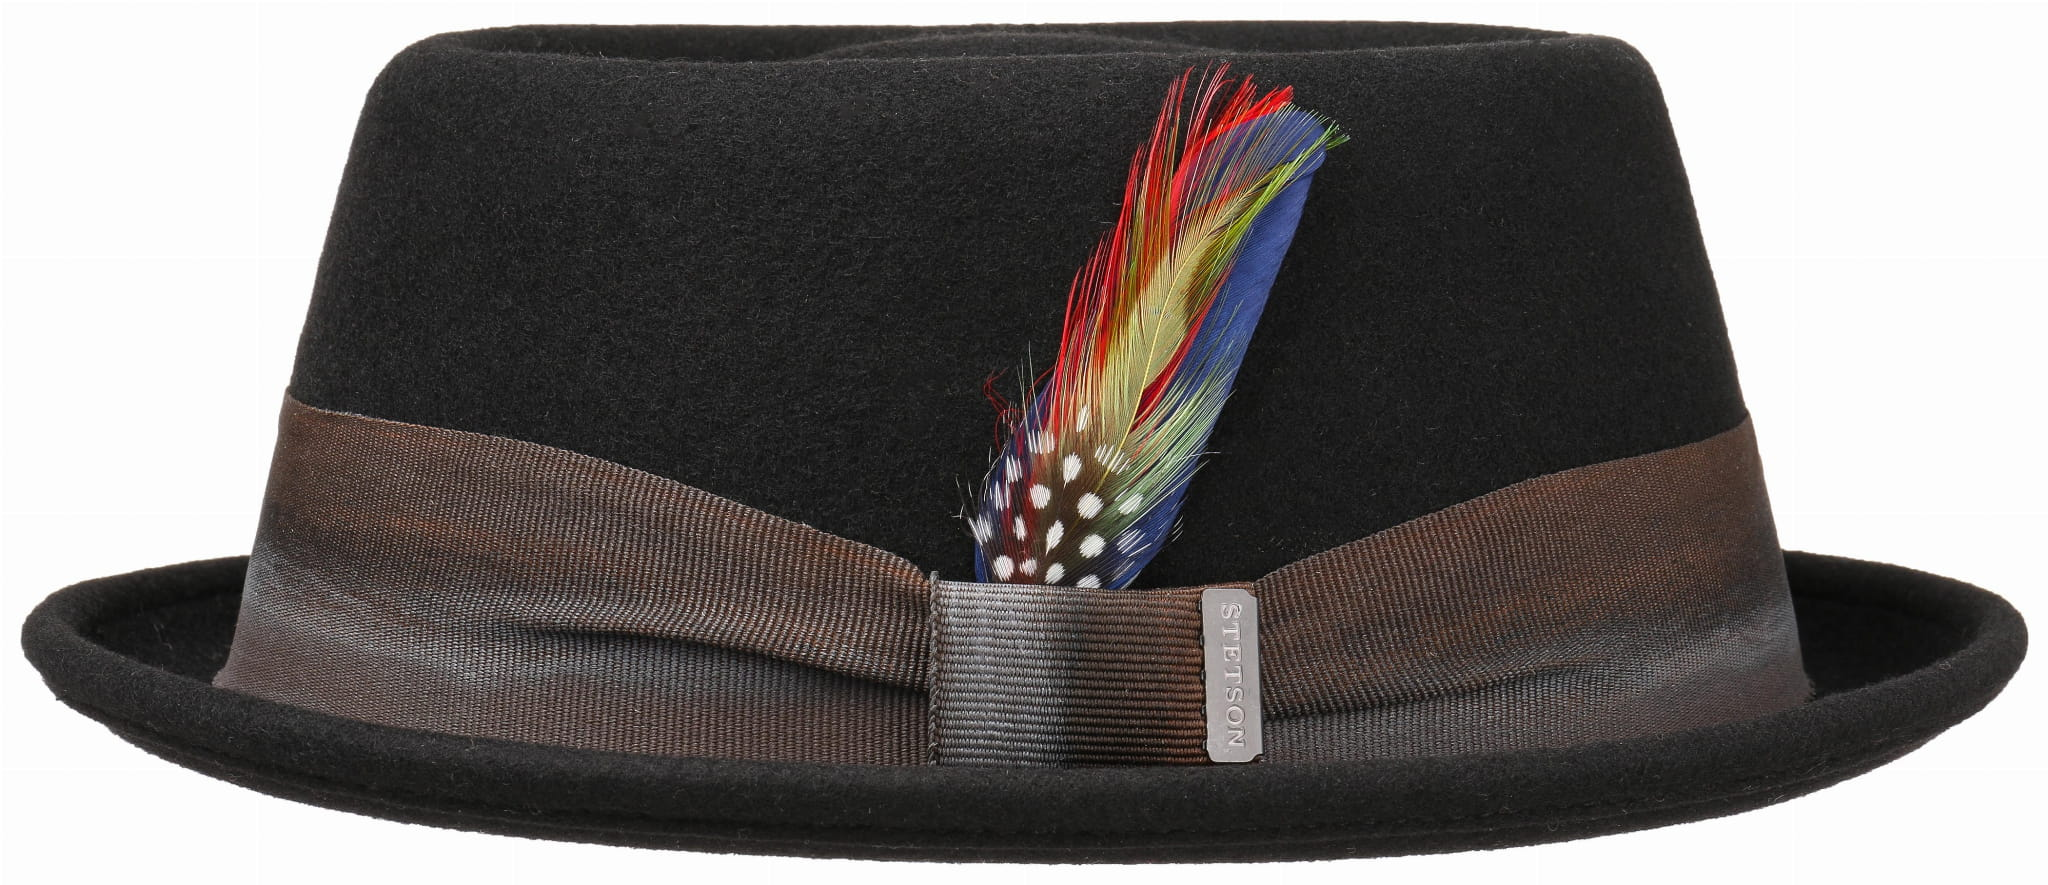 26706f2bf Pork Pie Stetson Black